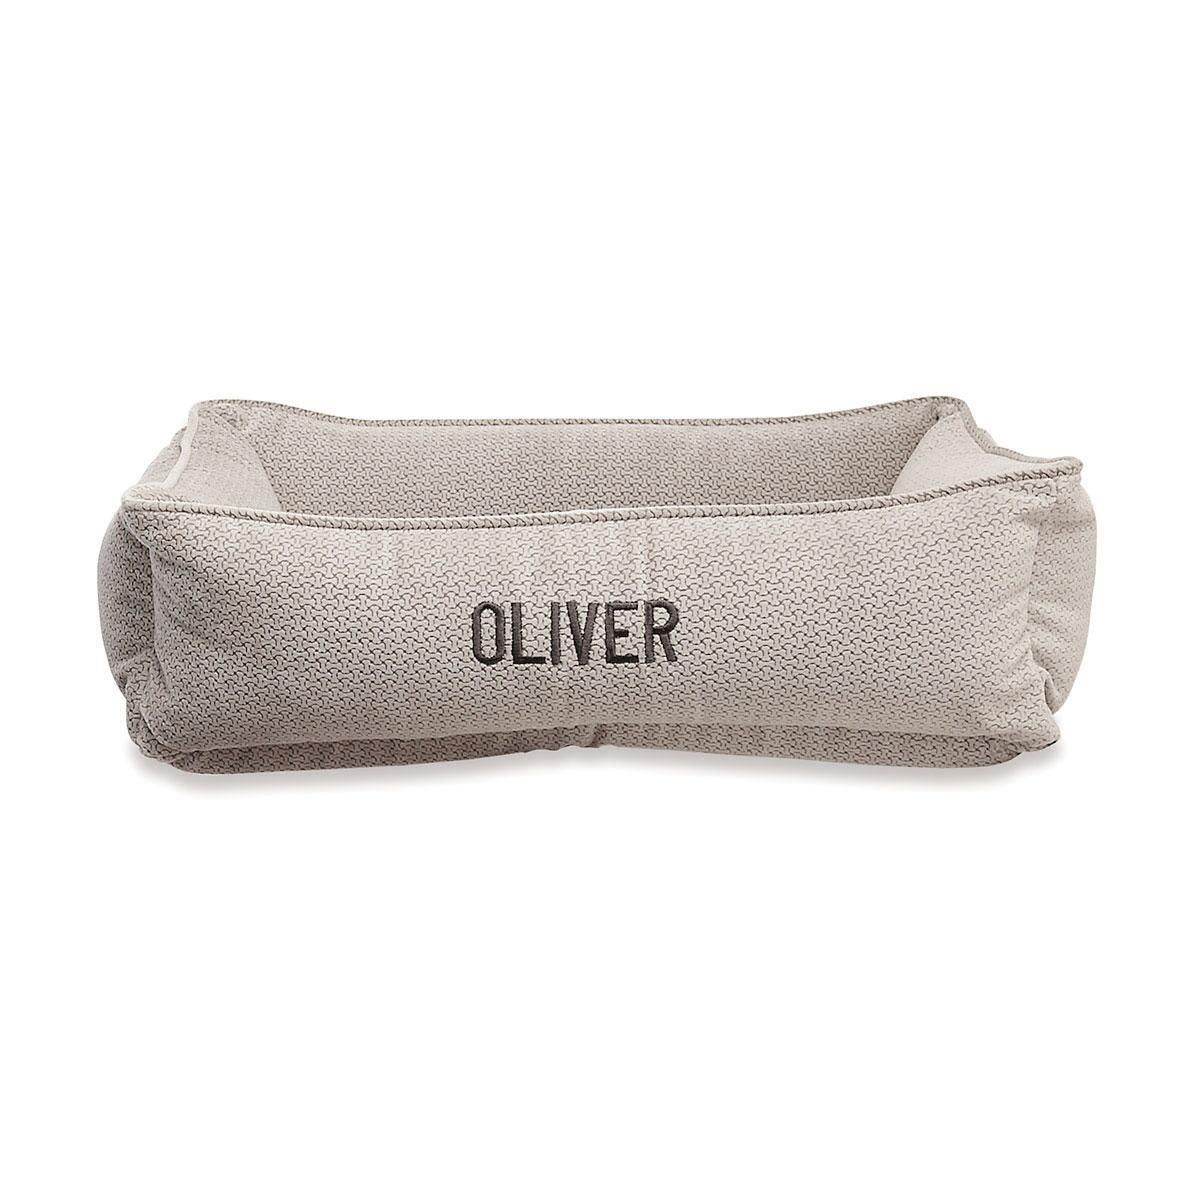 Small Lounger Silver Treats Dog Bed by Bowsers Pet Products